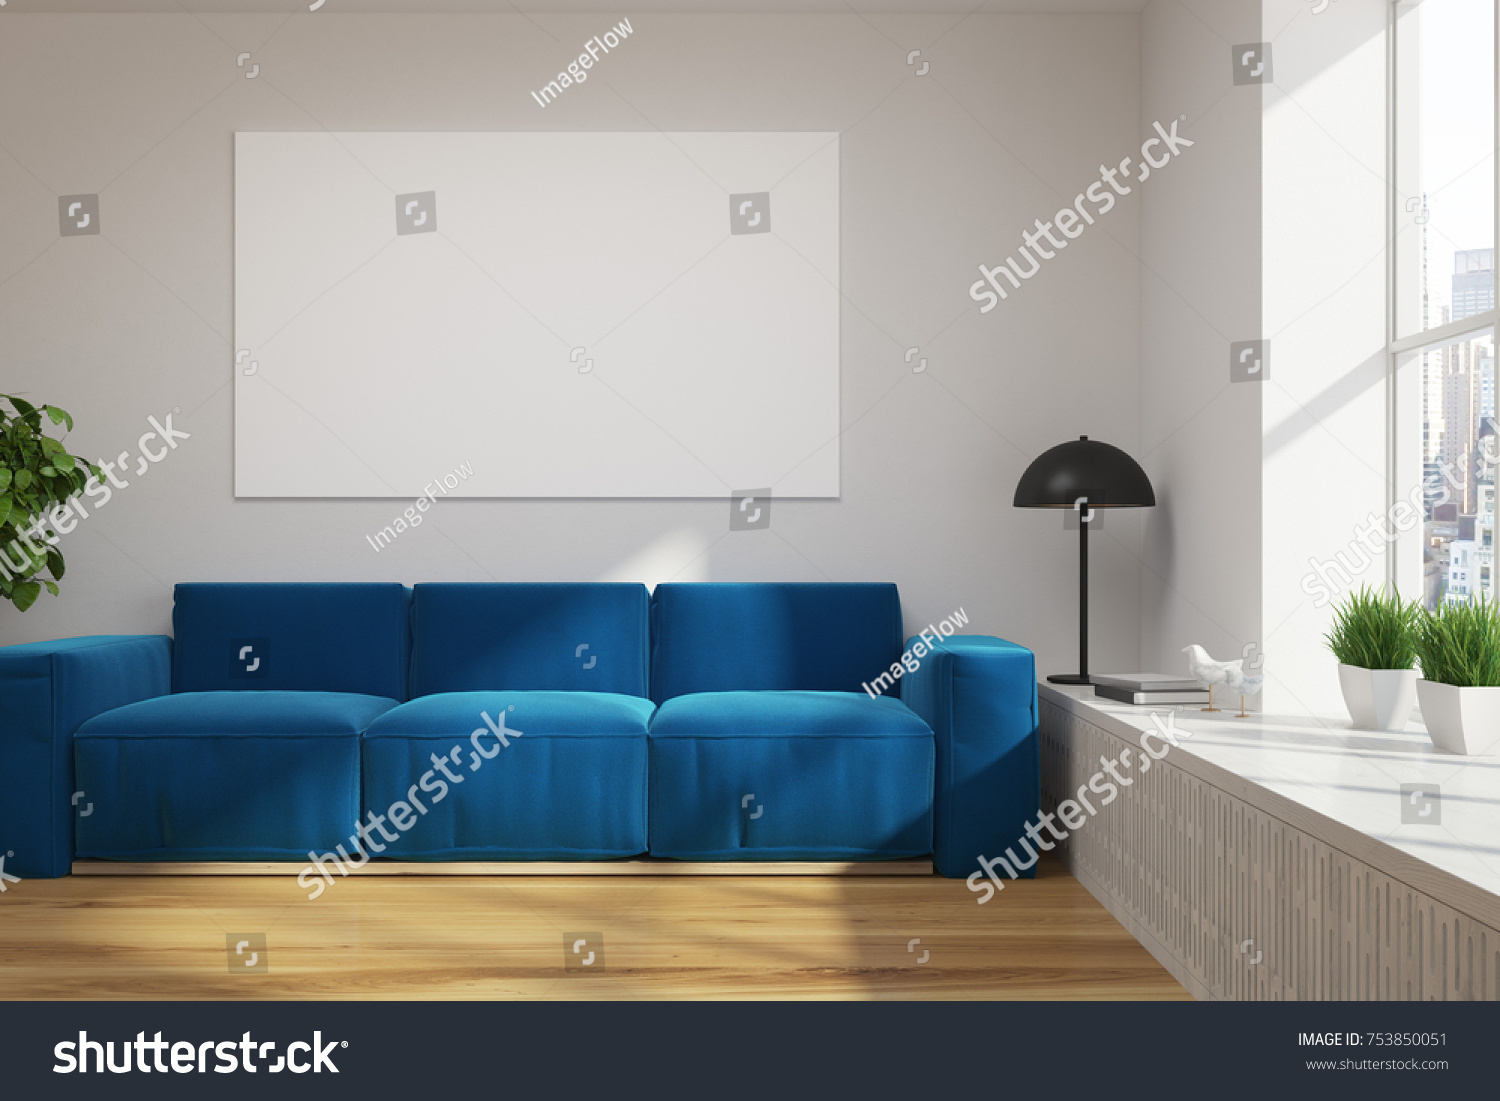 Living Room Interior With White Walls A Wooden Floor Bright Blue Sofa And